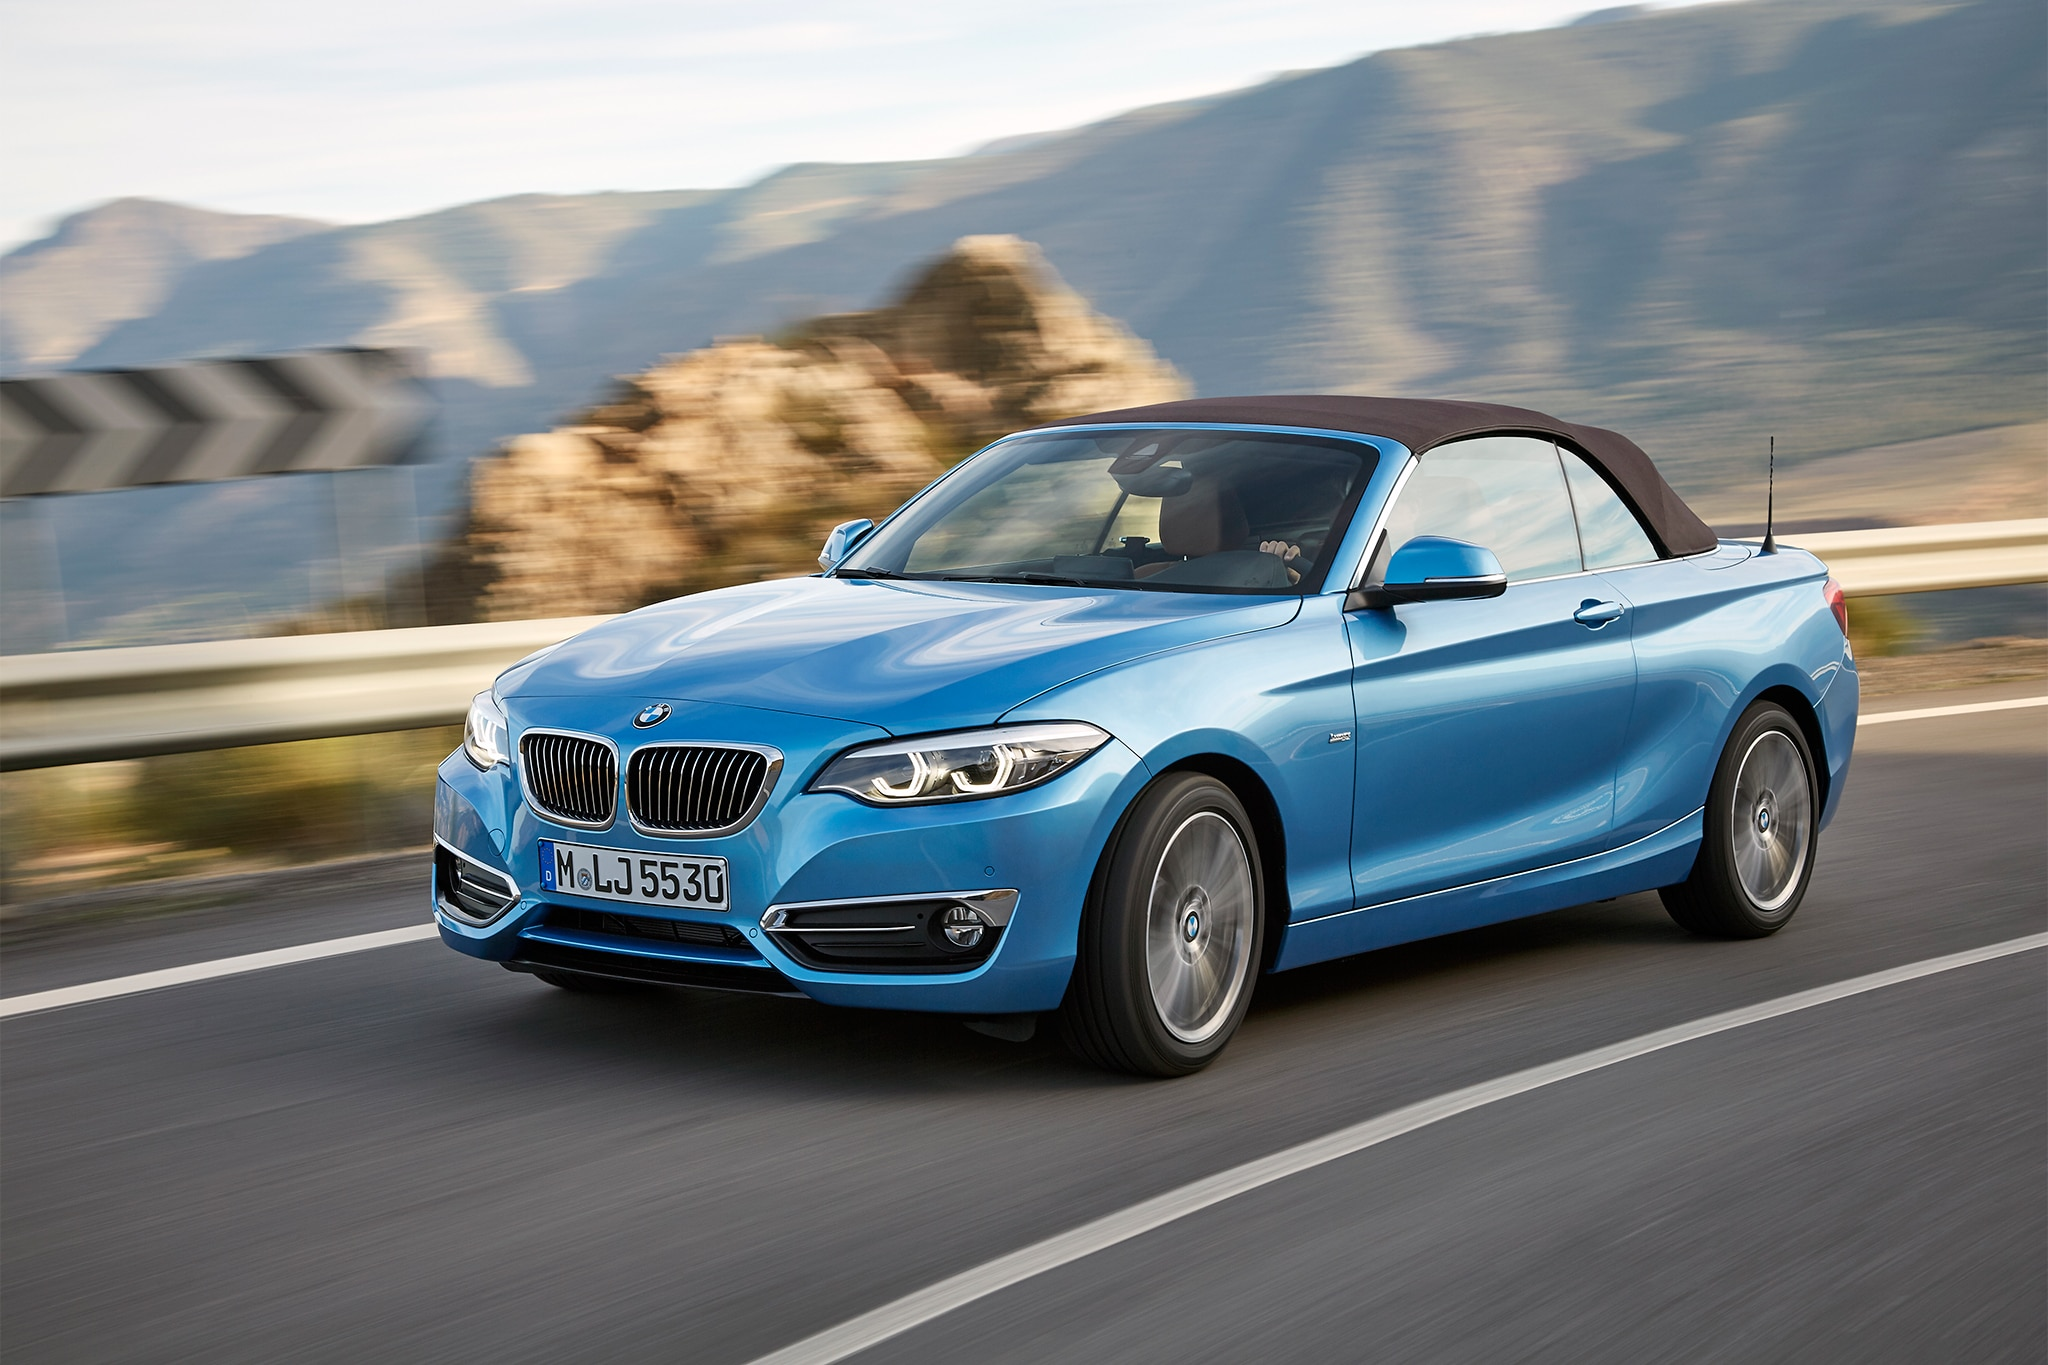 Bmw 228I Convertible >> 2018 BMW 2 Series Arrives with Subtle Updates | Automobile Magazine